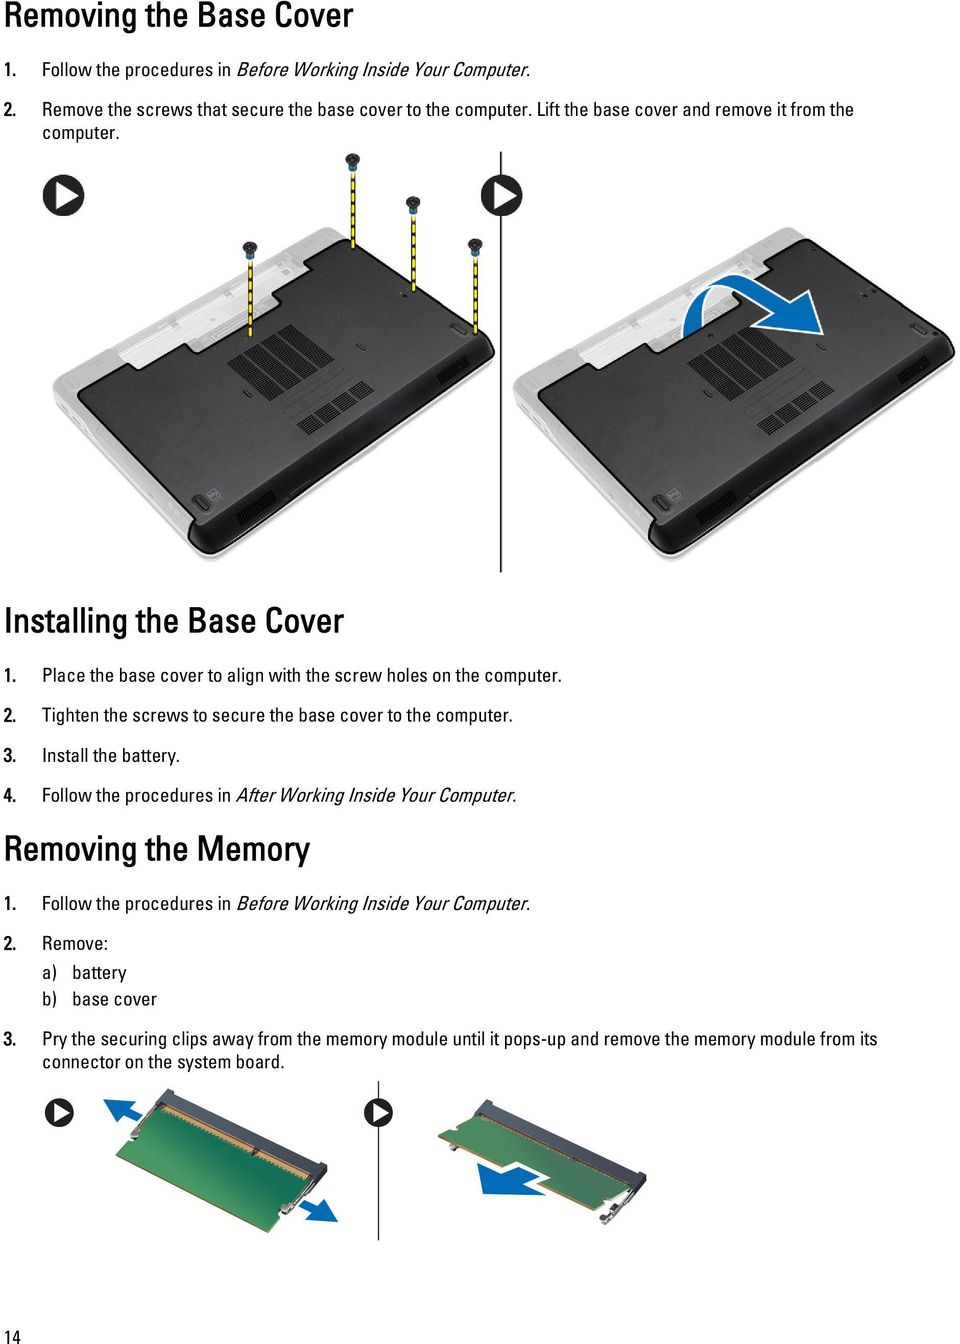 Tighten the screws to secure the base cover to the computer. 3. Install the battery. 4. Follow the procedures in After Working Inside Your Computer. Removing the Memory 1.